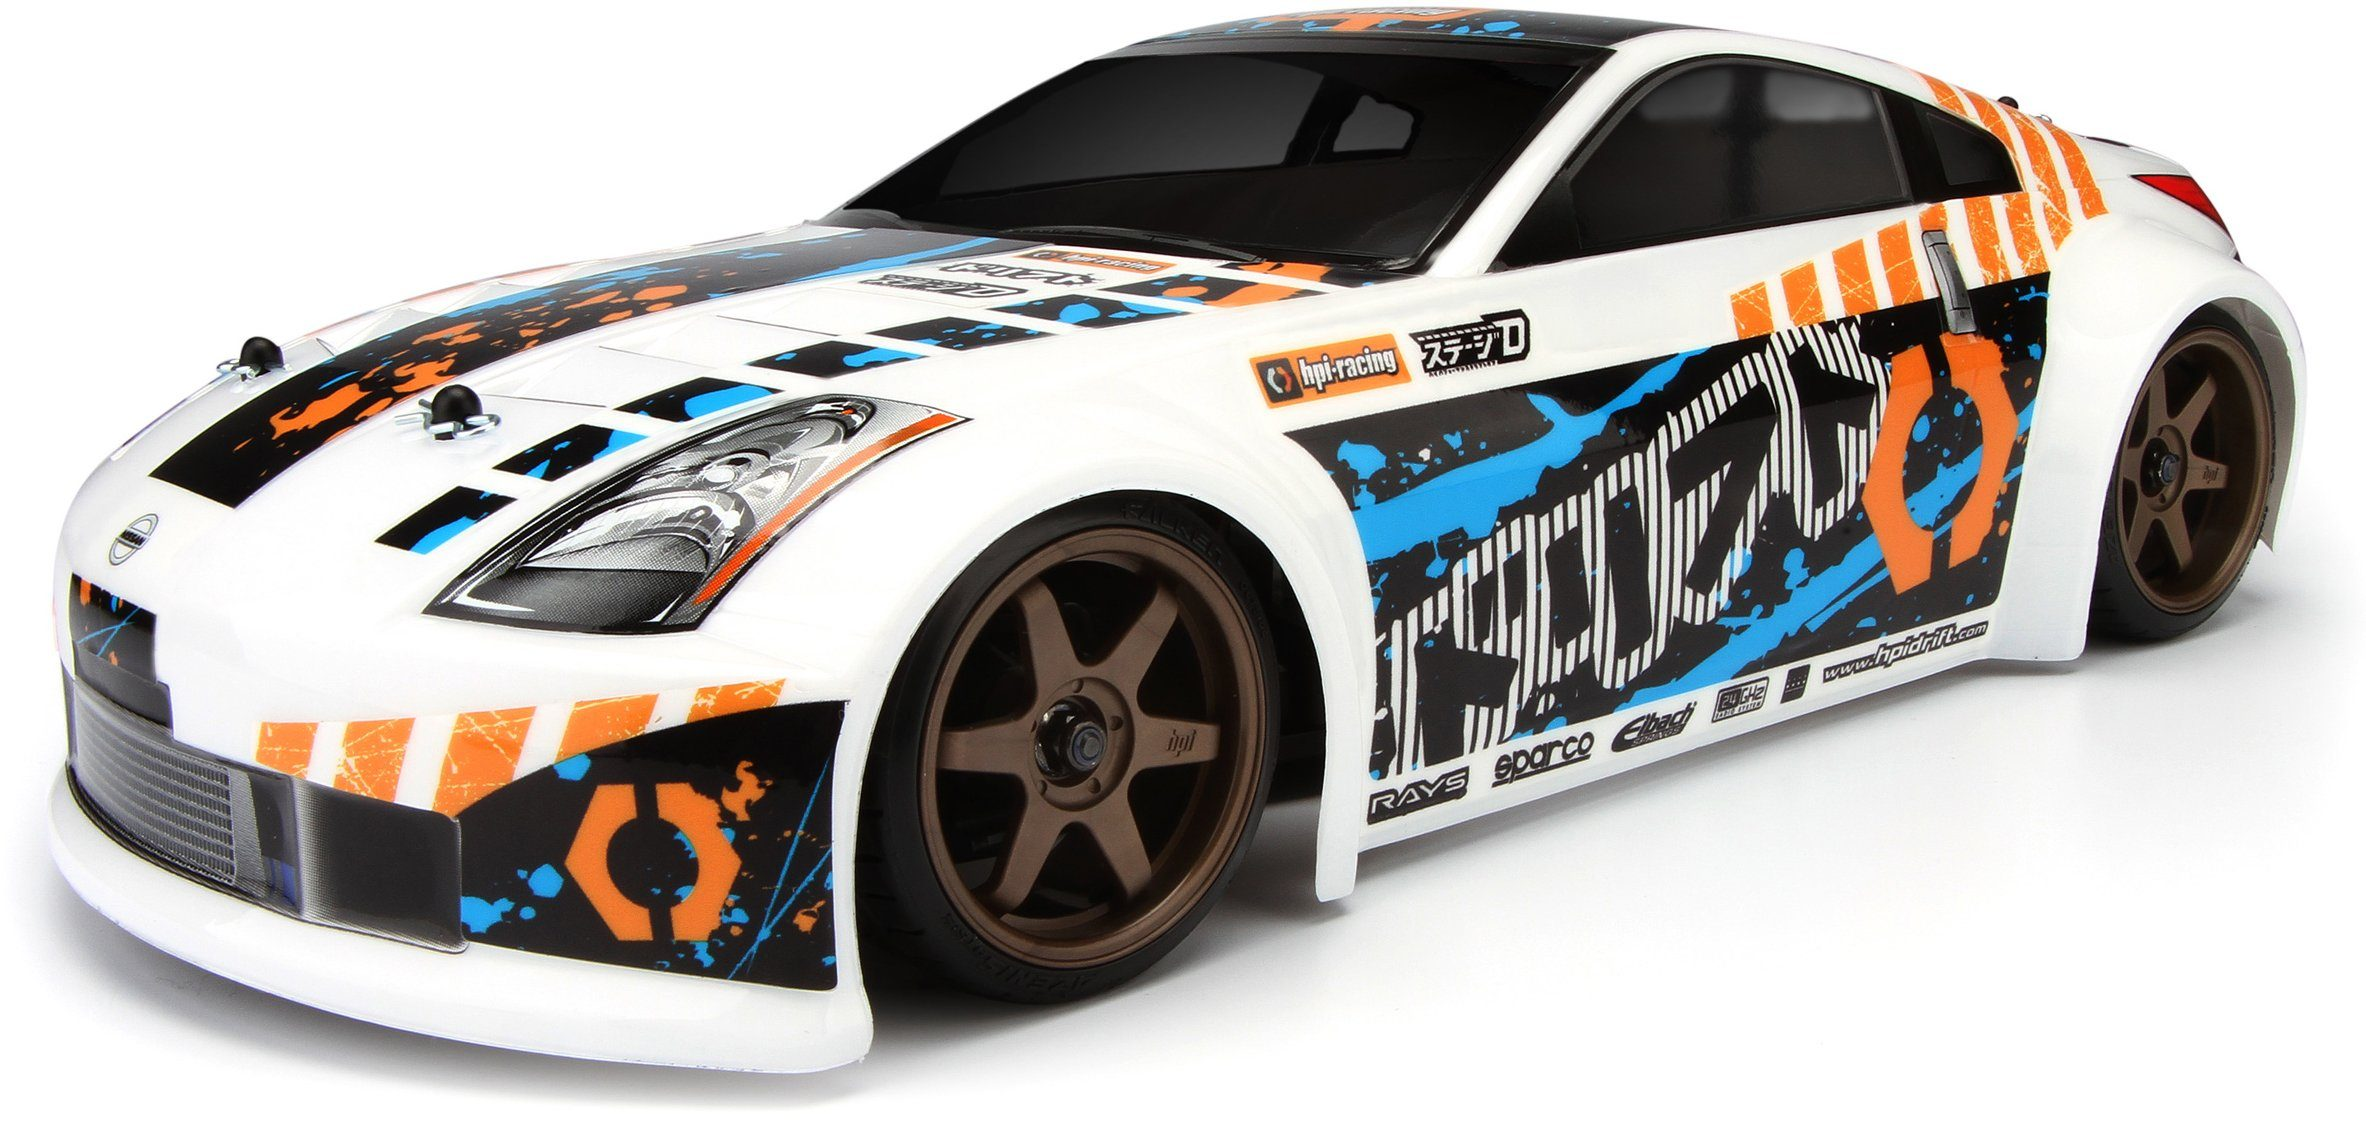 HPI Racing RC Komplettset, »Sprint 2 Drift, Nissan 350Z 1:10 2,4 GHz«